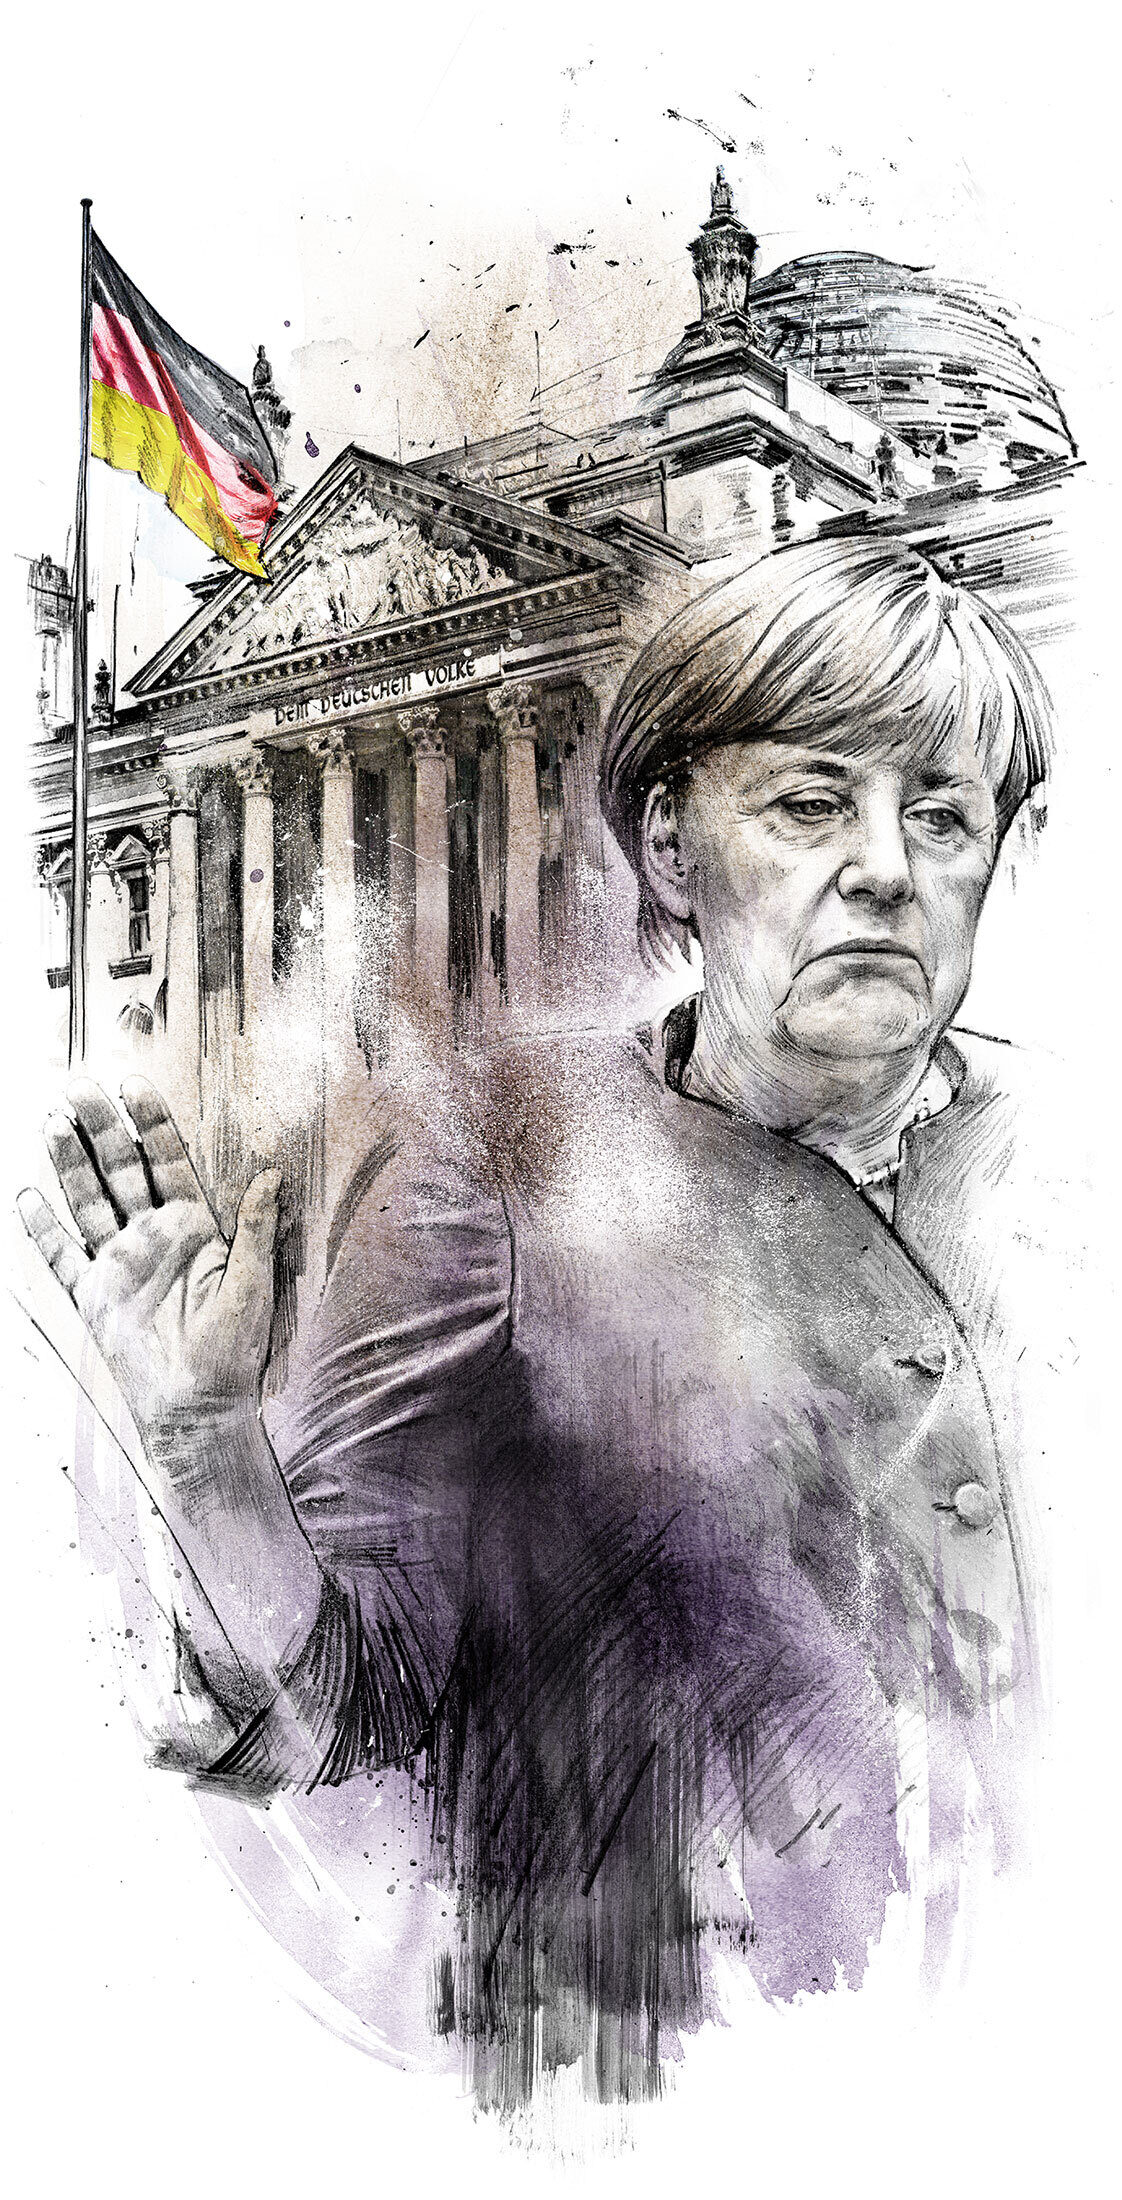 Angela Merkel Bundestag Illustration - Kornel Illustration | Kornel Stadler portfolio